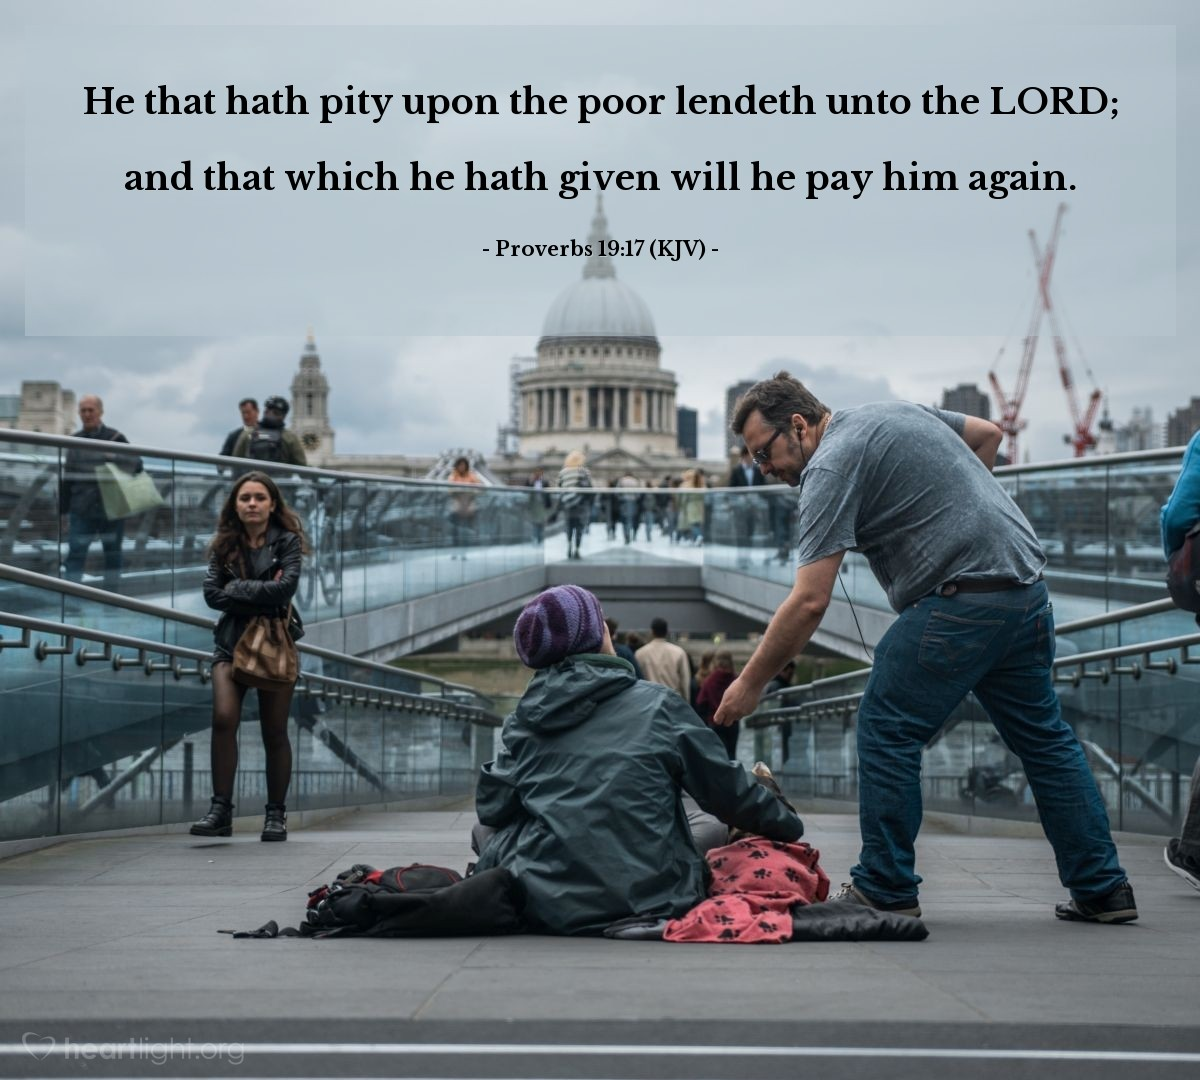 Illustration of Proverbs 19:17 (KJV) — He that hath pity upon the poor lendeth unto the LORD; and that which he hath given will he pay him again.